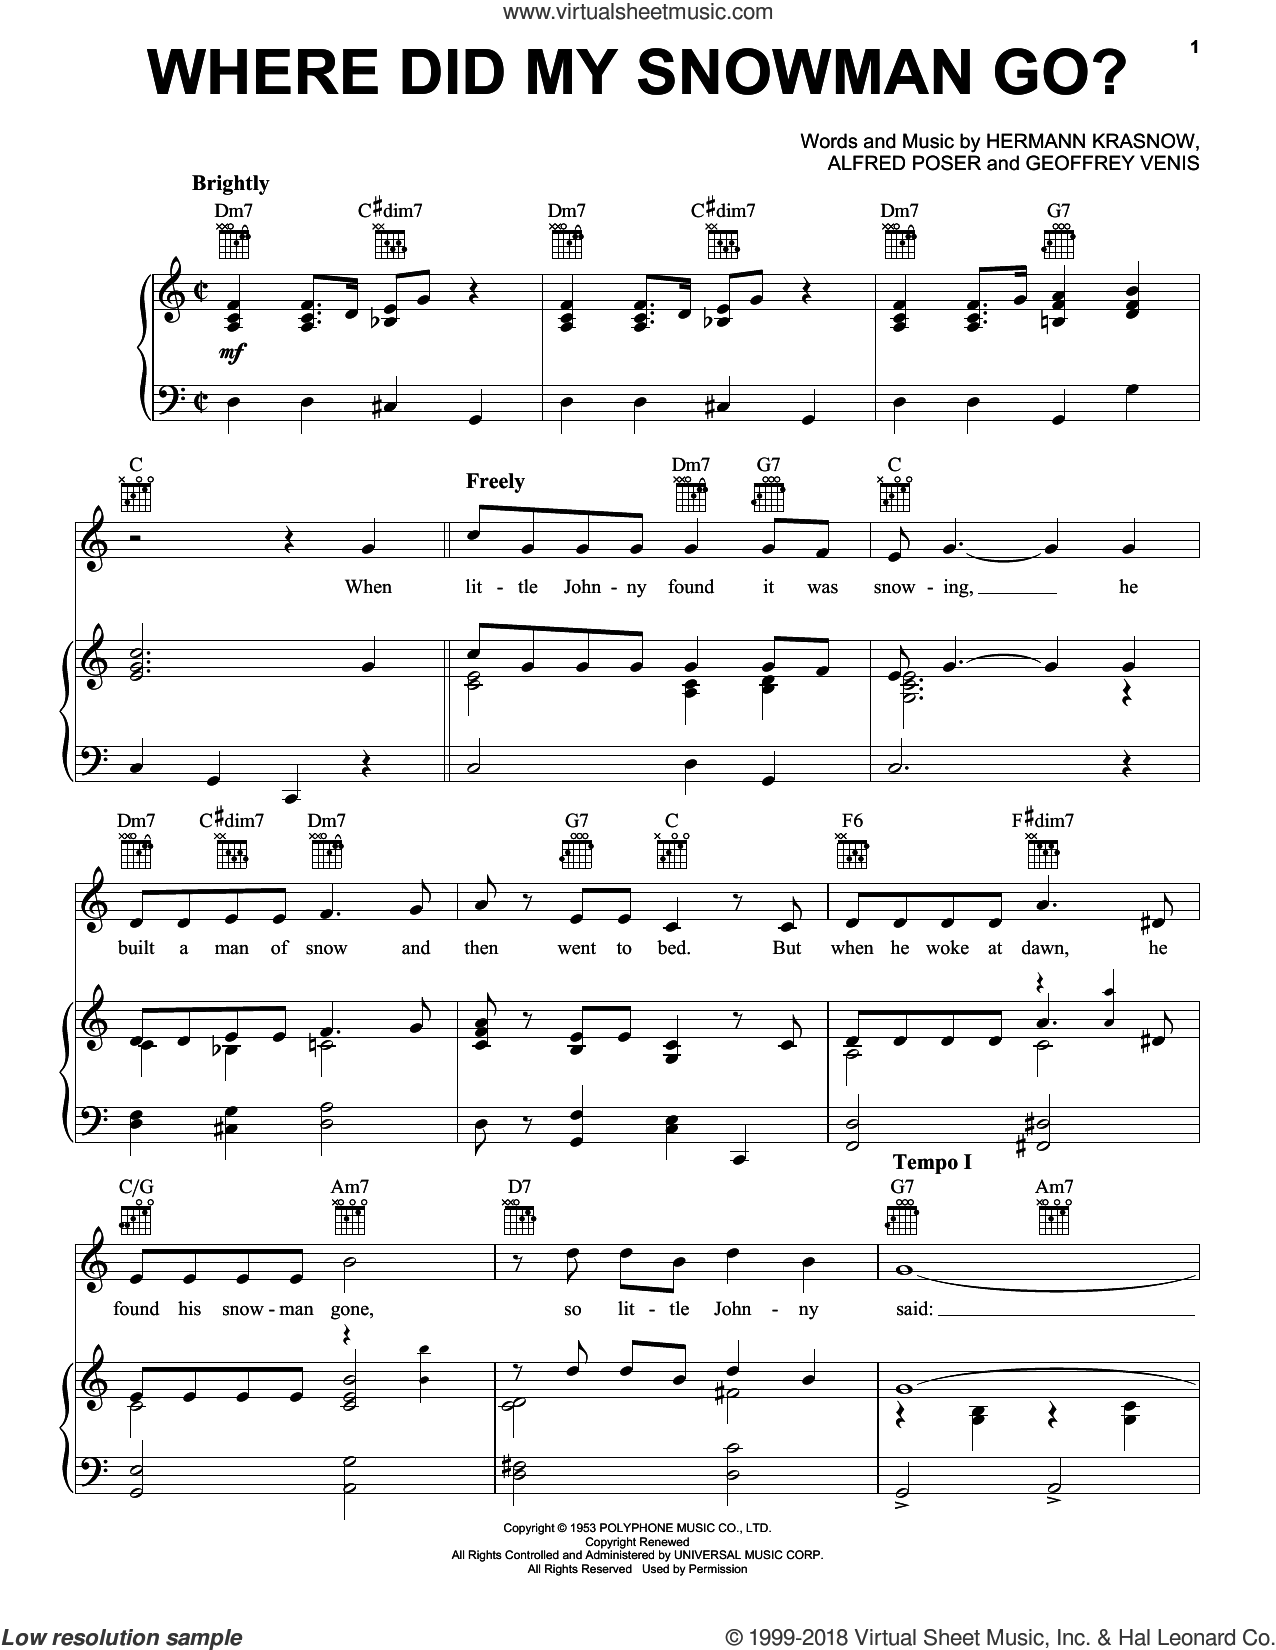 Where Did My Snowman Go? sheet music for voice, piano or guitar by Gene Autry. Score Image Preview.